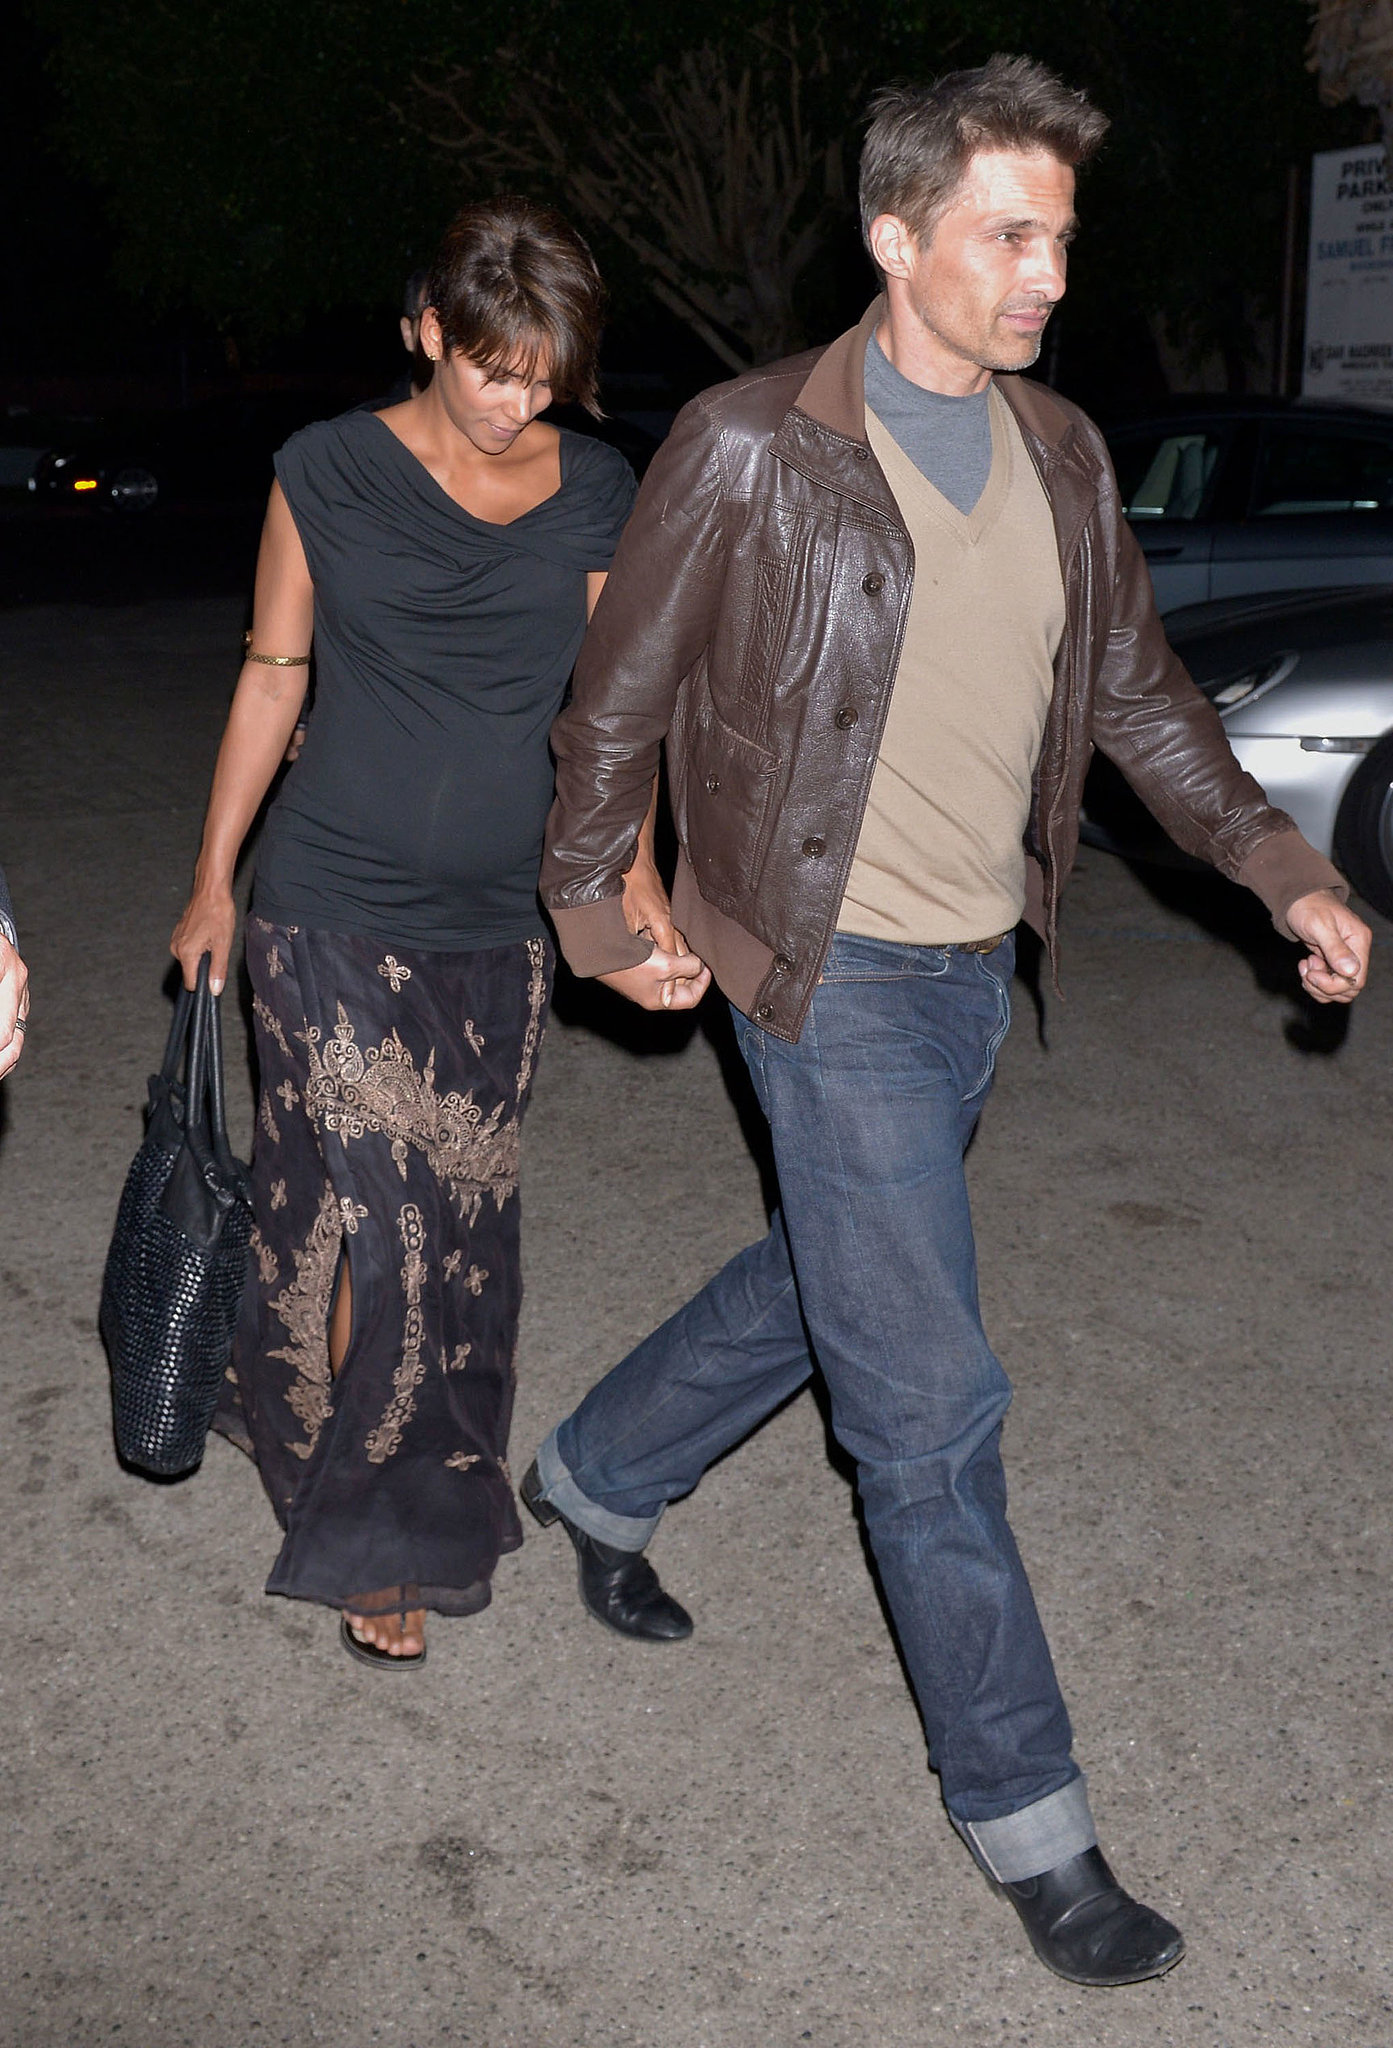 For a slightly more formal evening out with her man, Halle played on the dark side of the color spectrum, topping off a printed long skirt with a cowl-necked top.